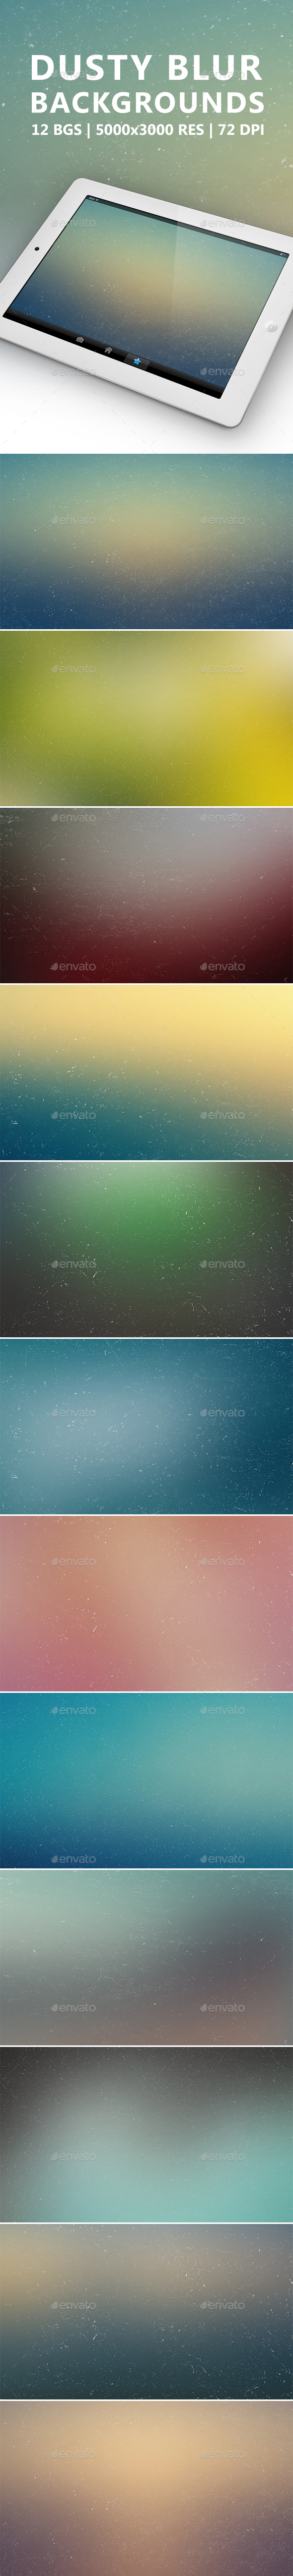 Dusty Blur Backgrounds - Abstract Backgrounds